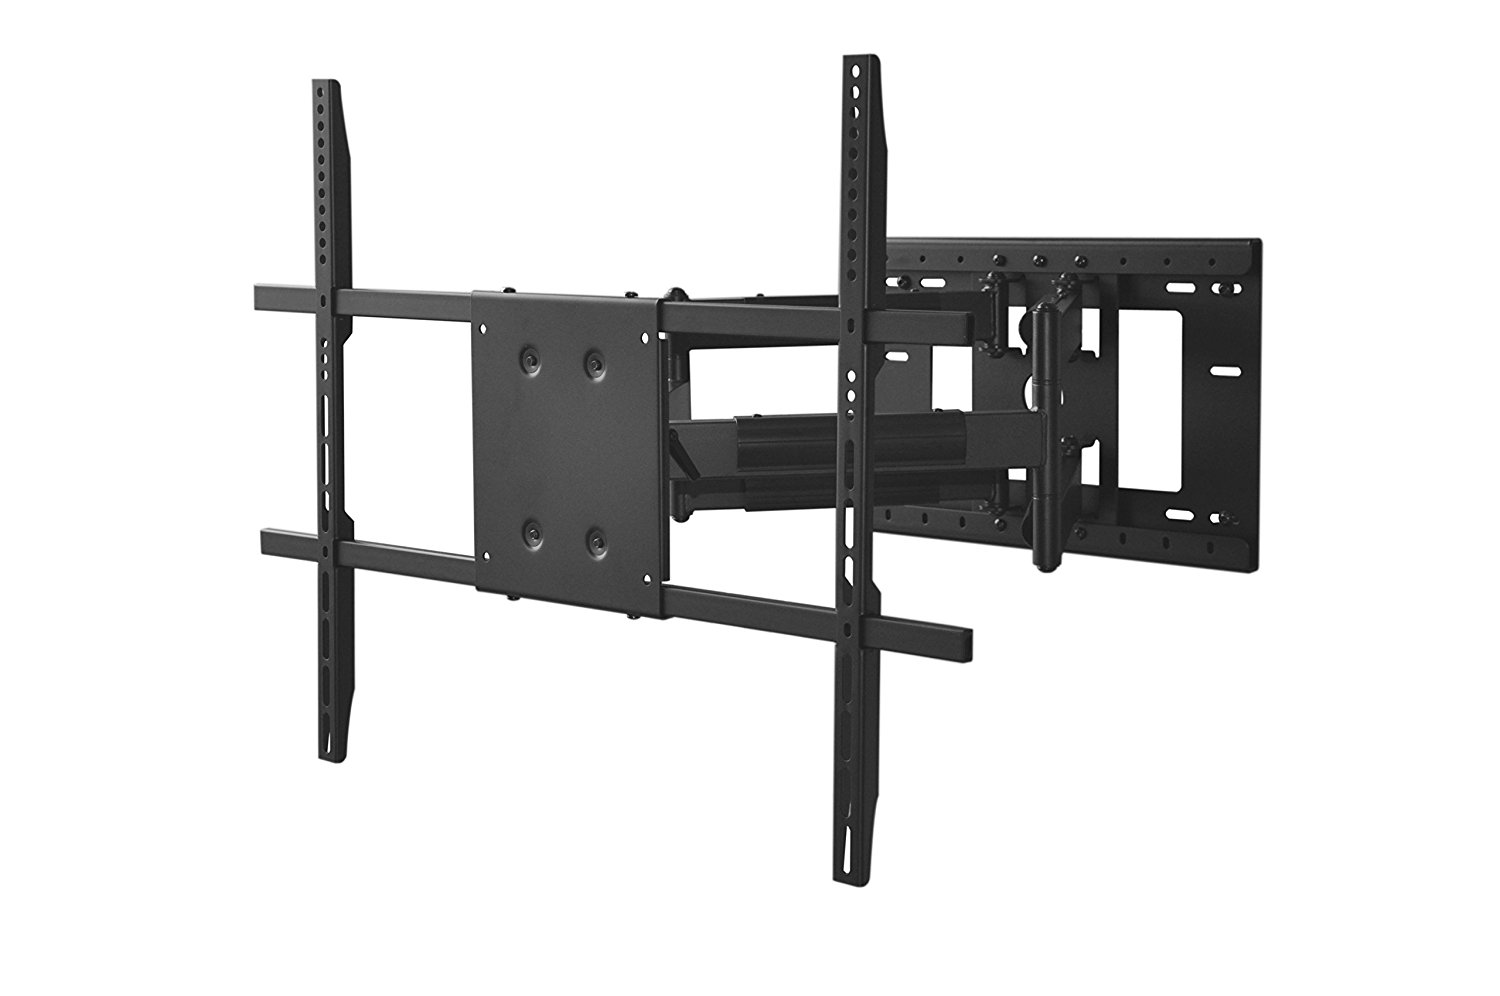 """THE MOUNT STORE TV Wall Mount for LG Signature C6 Series 55"""" 3D Curved OLED Smart TV 4K UltraHD - OLED55C6P VESA 400x200mm Maximum Extension 37 inches"""